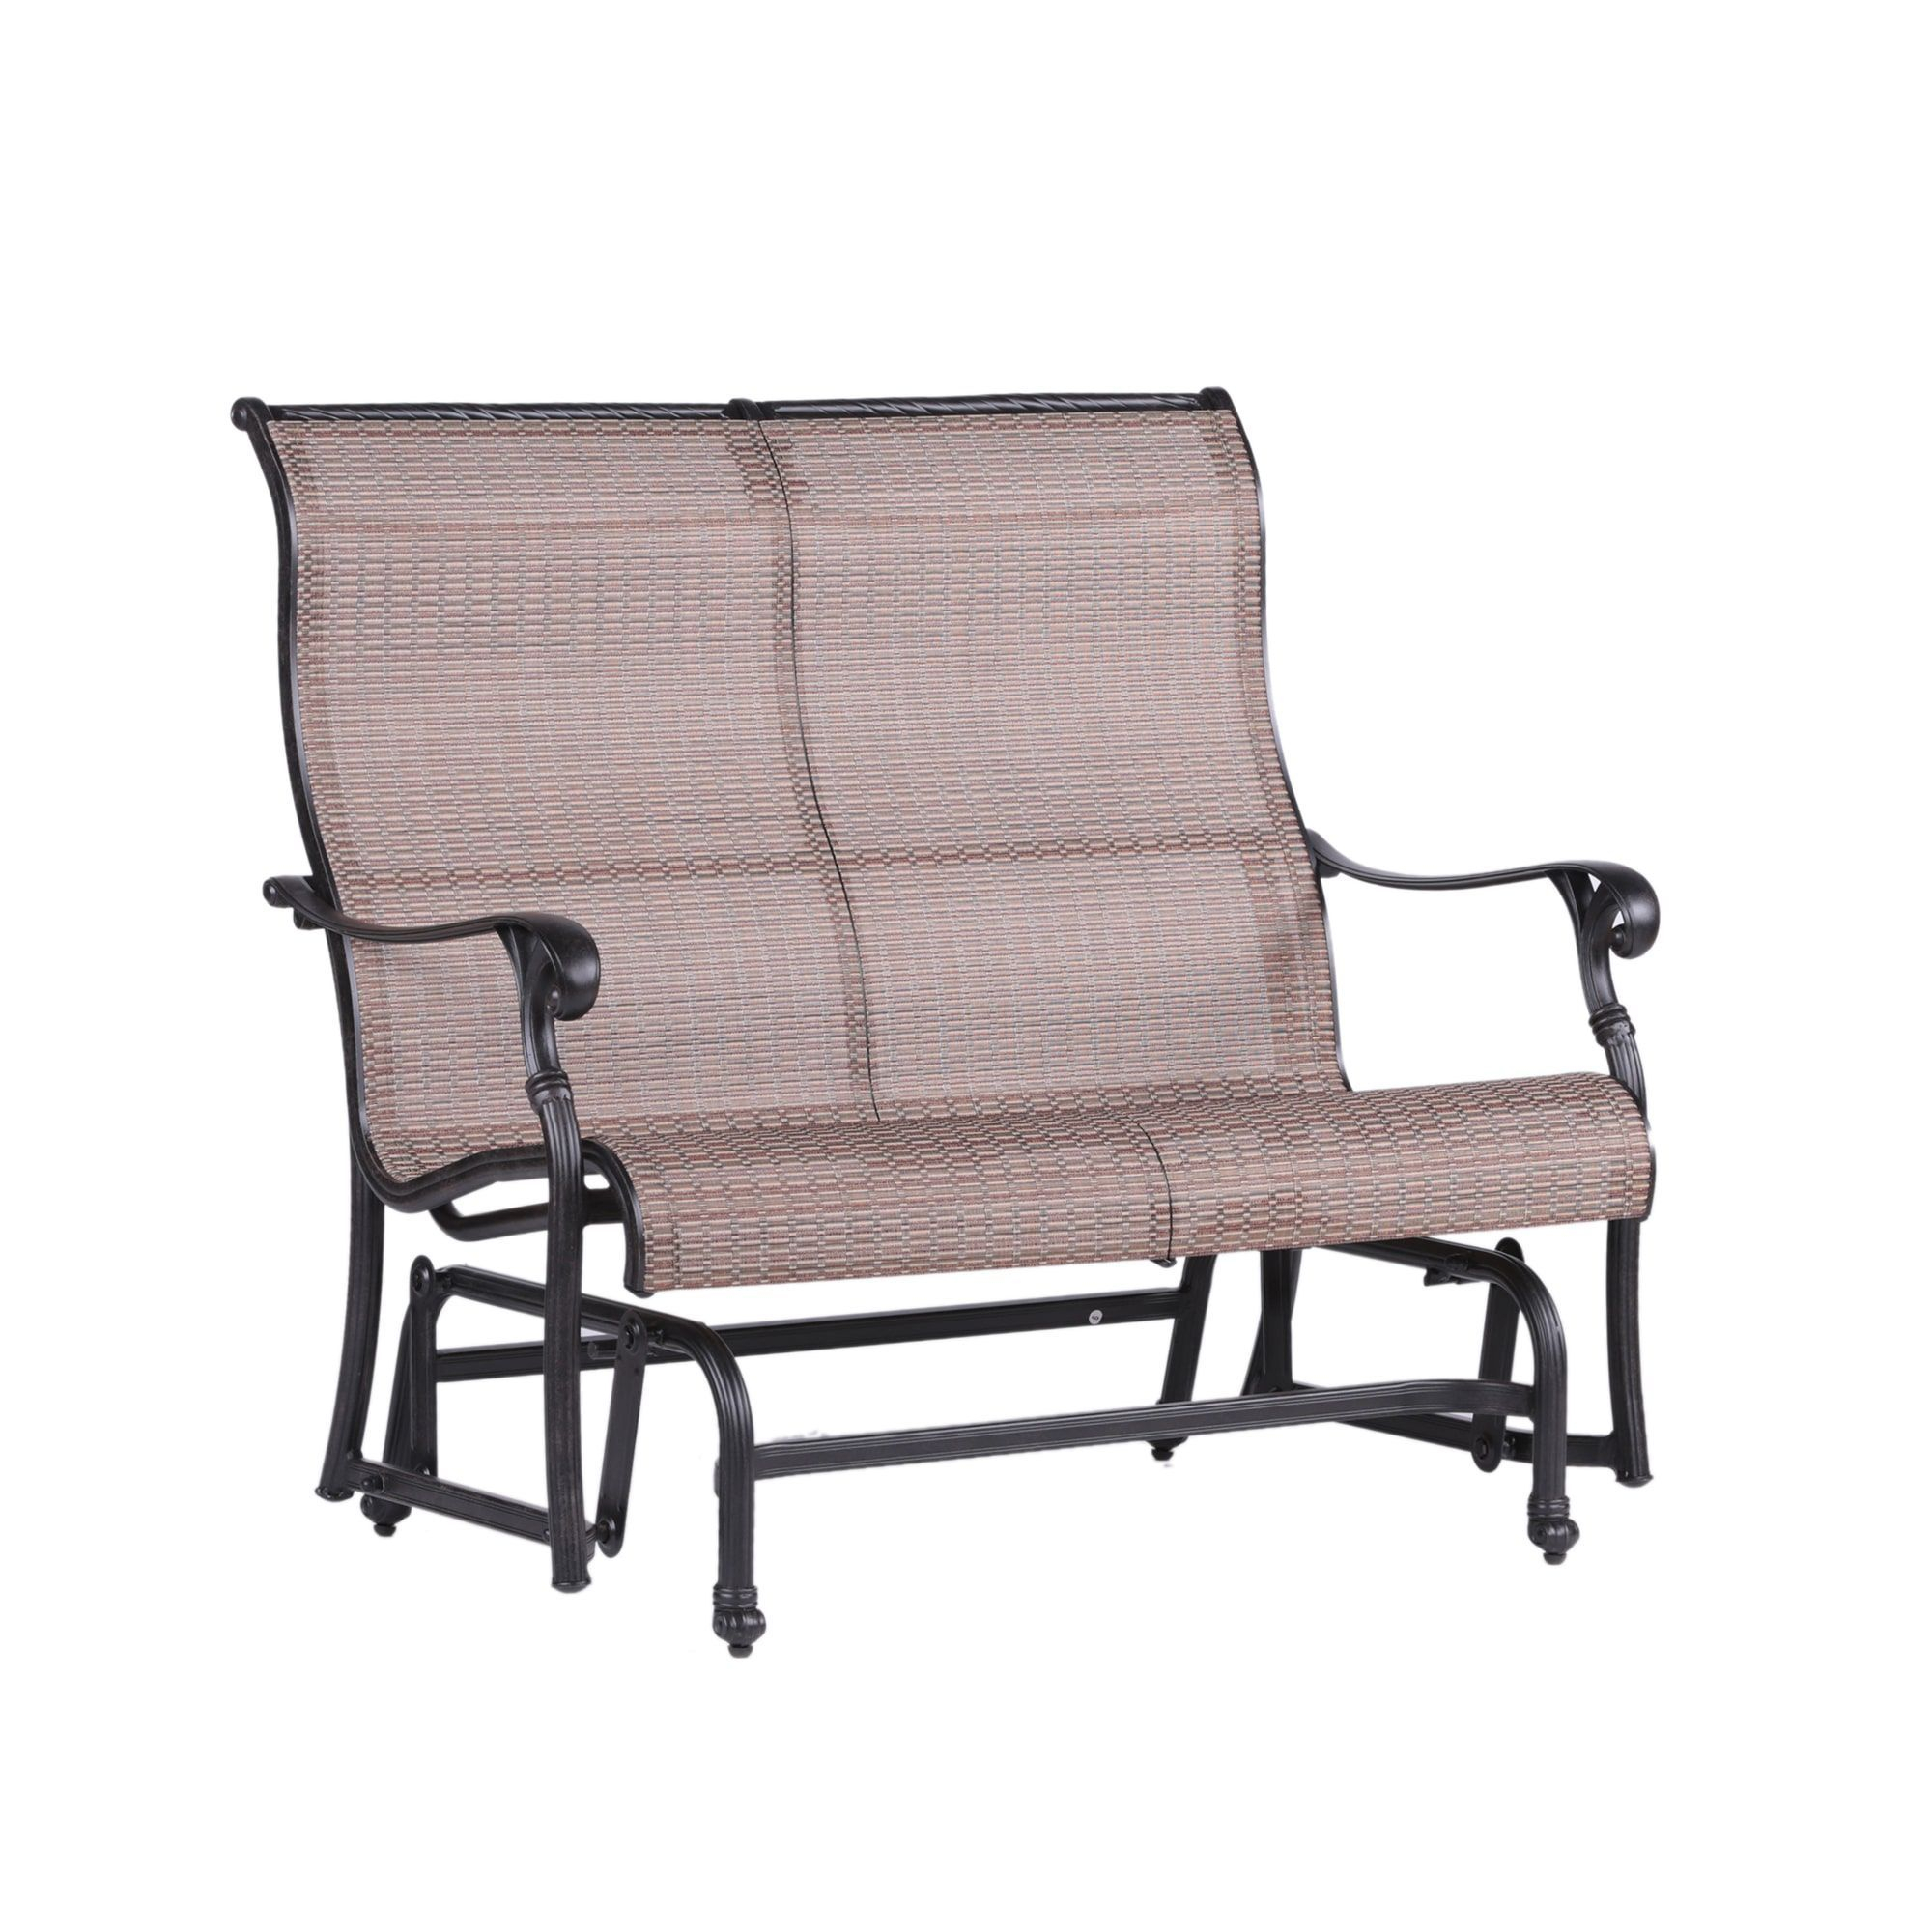 Yorkshire Cast Aluminum (Silver) Sling Fabric Double Glider Pertaining To Aluminum Glider Benches With Cushion (View 12 of 25)